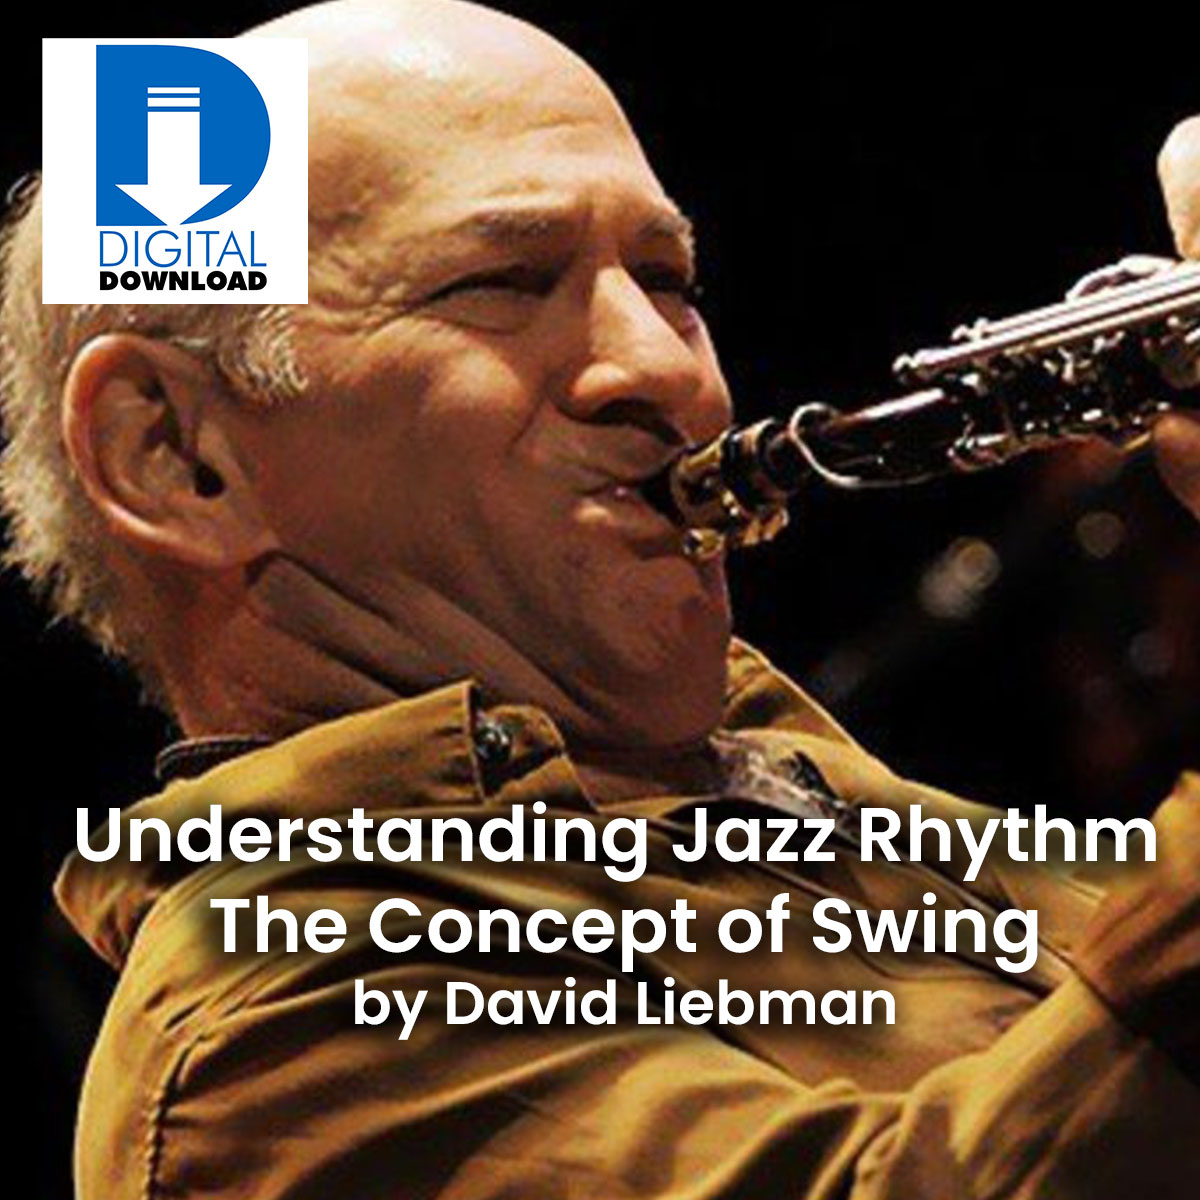 Understanding Jazz Rhythm: The Concept of Swing